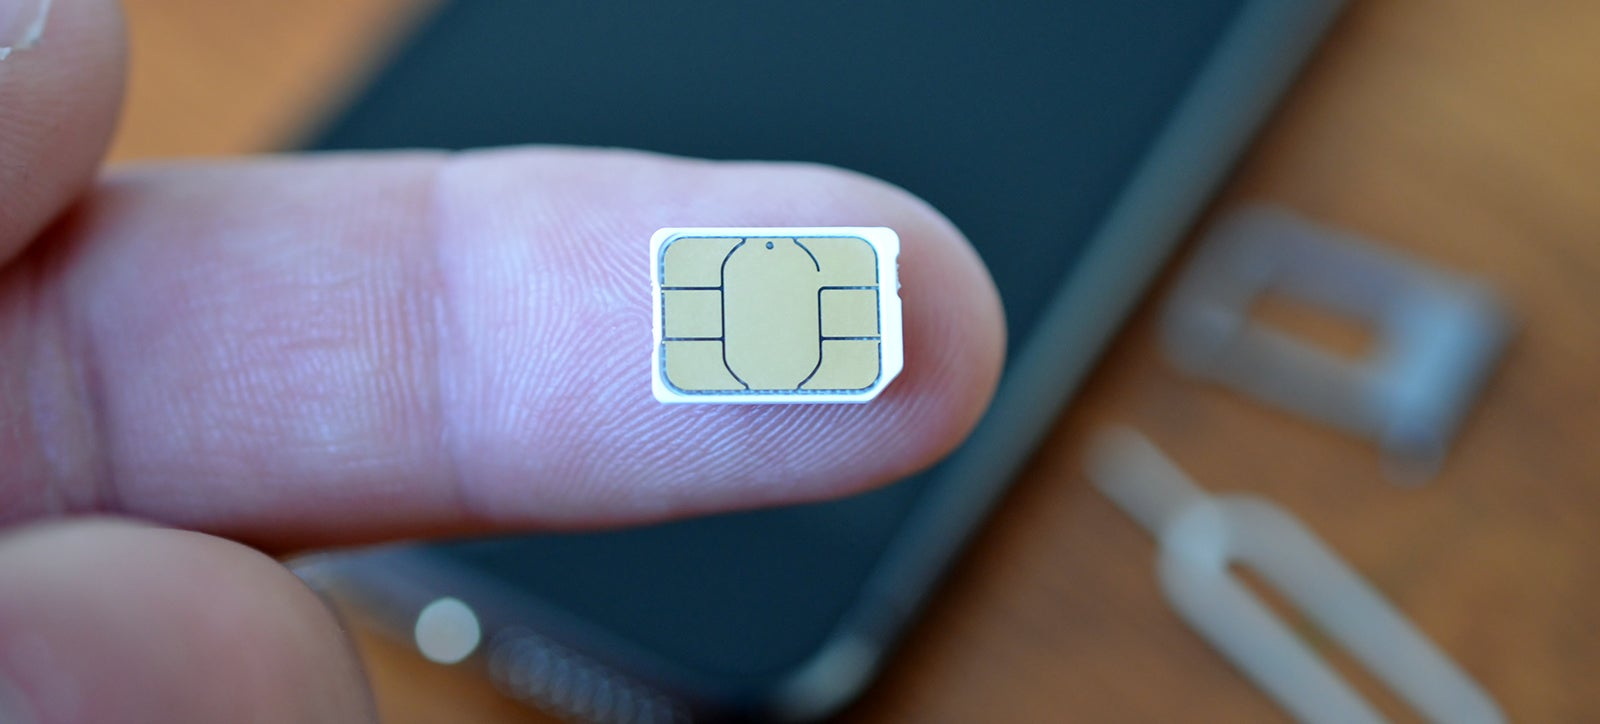 A Wearable SIM Could Let You Use One Number With Any Device